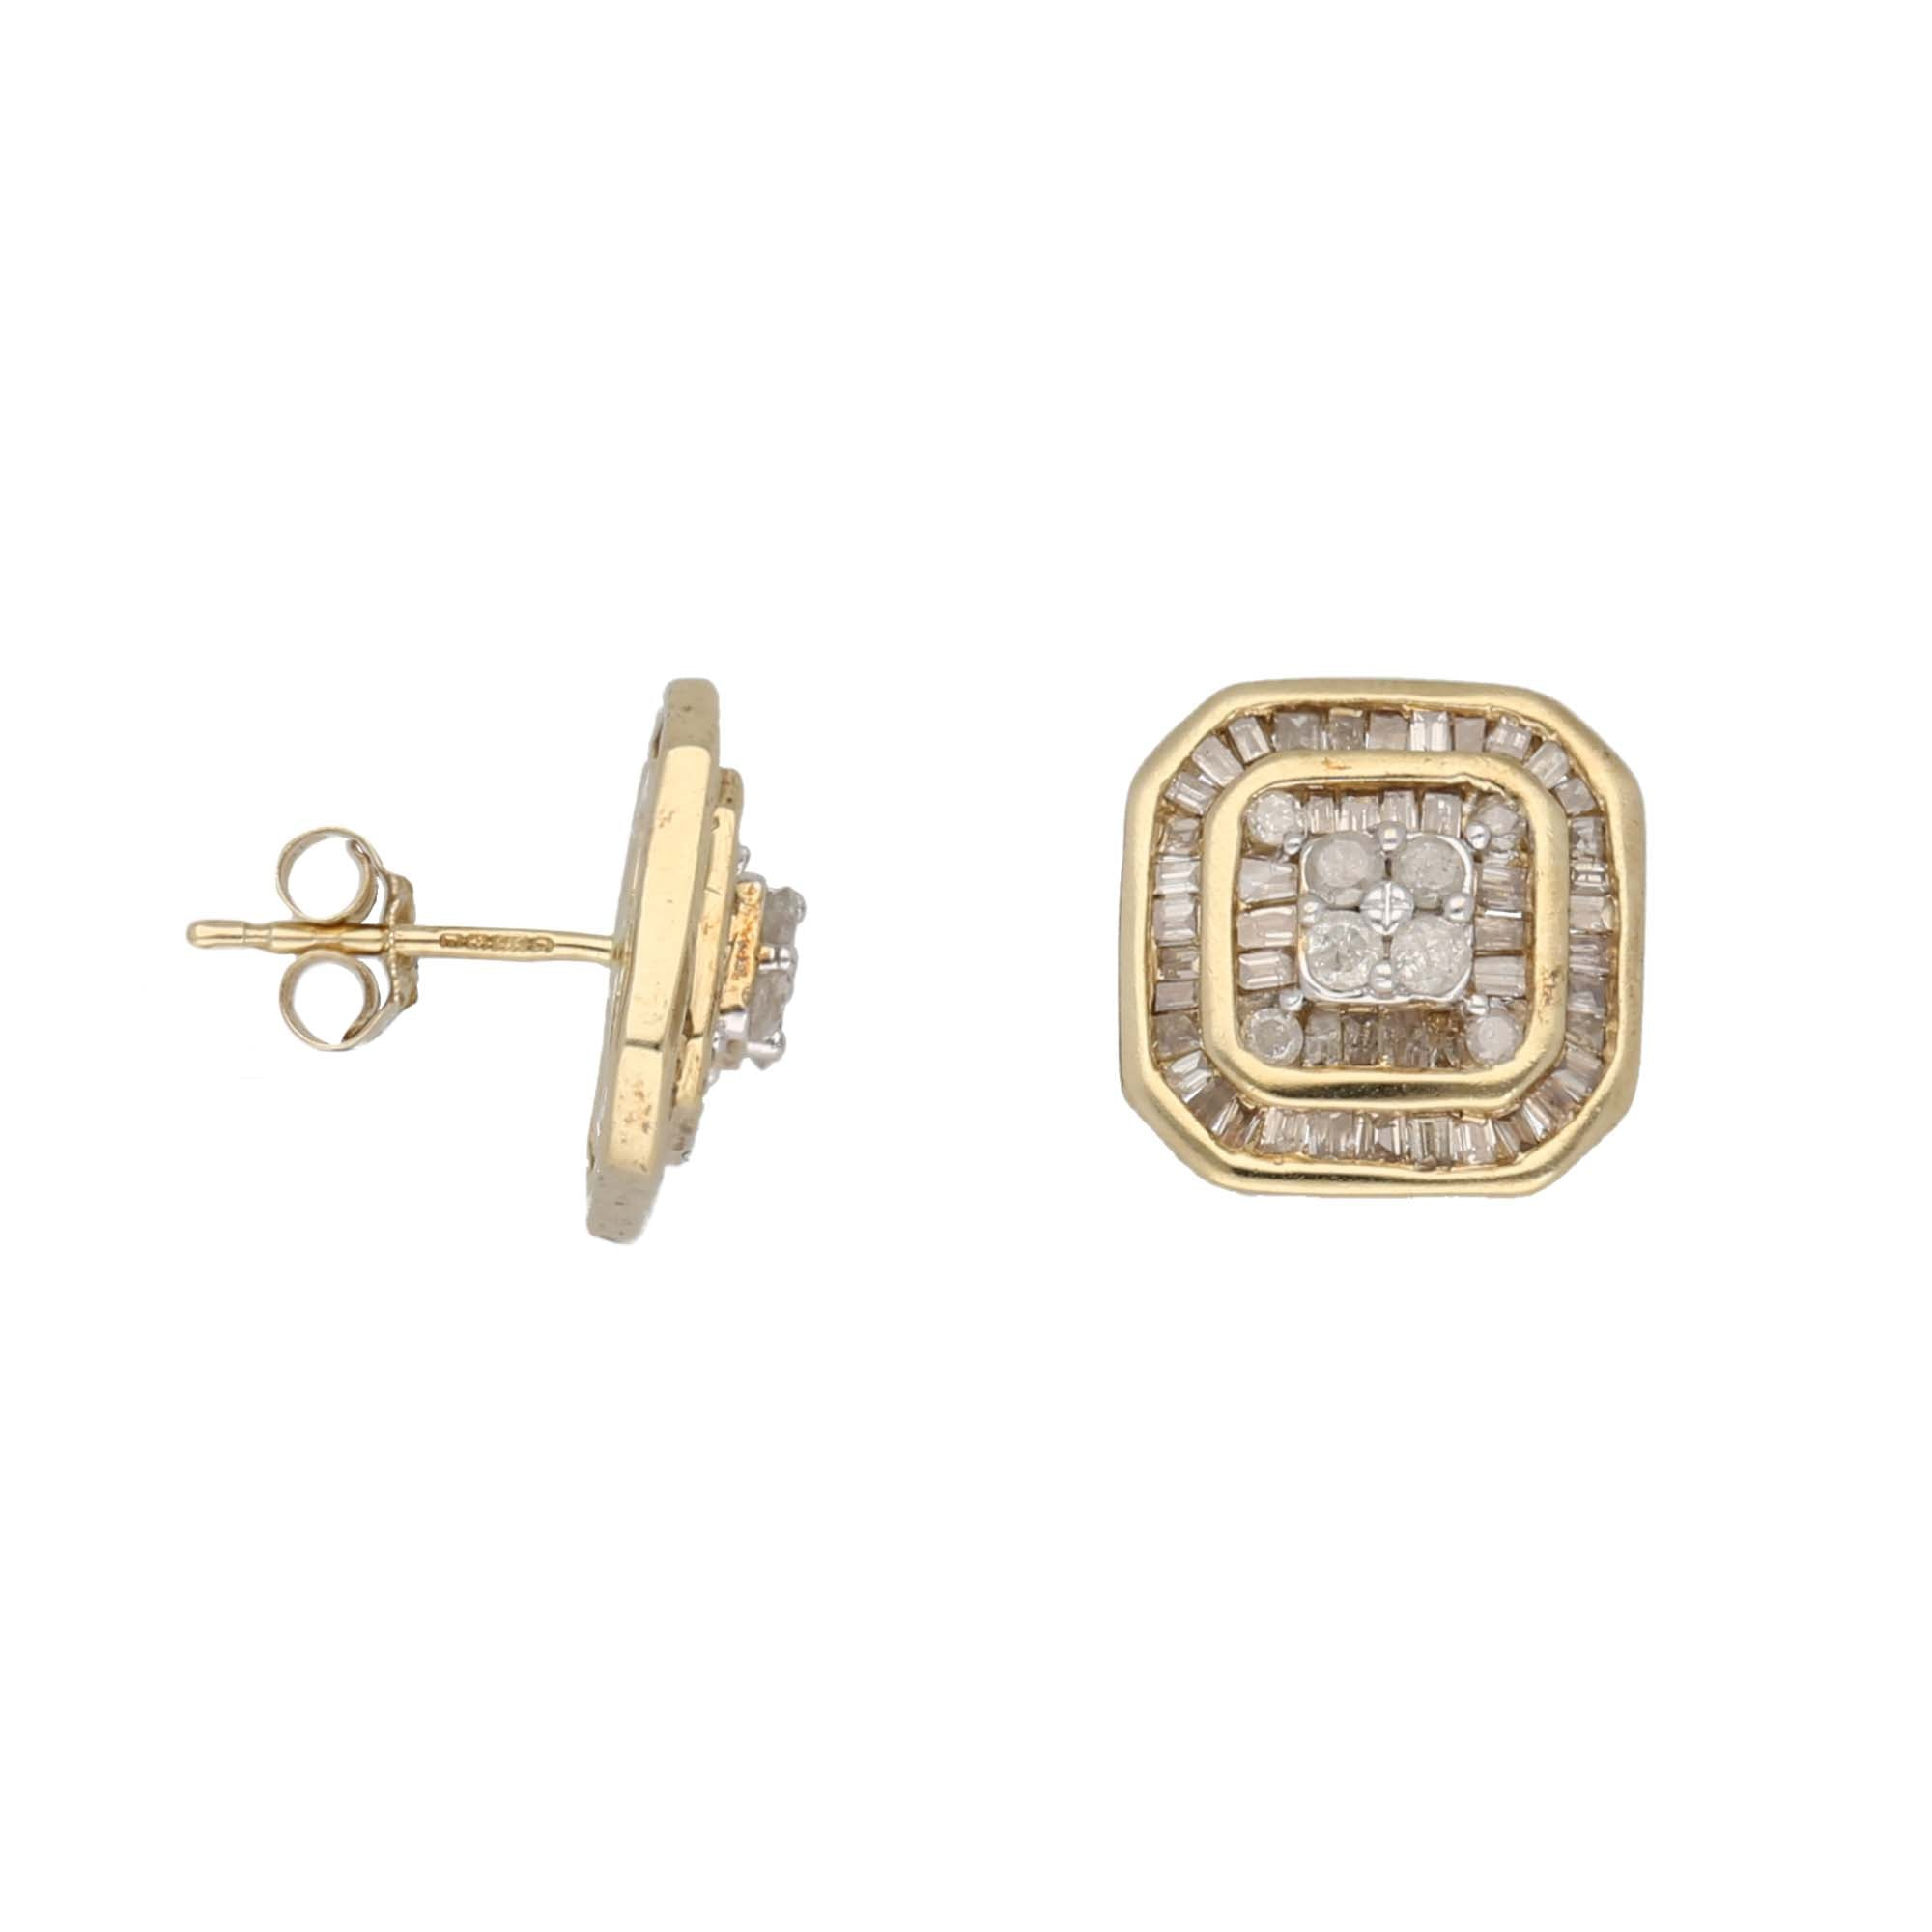 9ct Gold Diamond Ladies Dress Cocktail Earrings